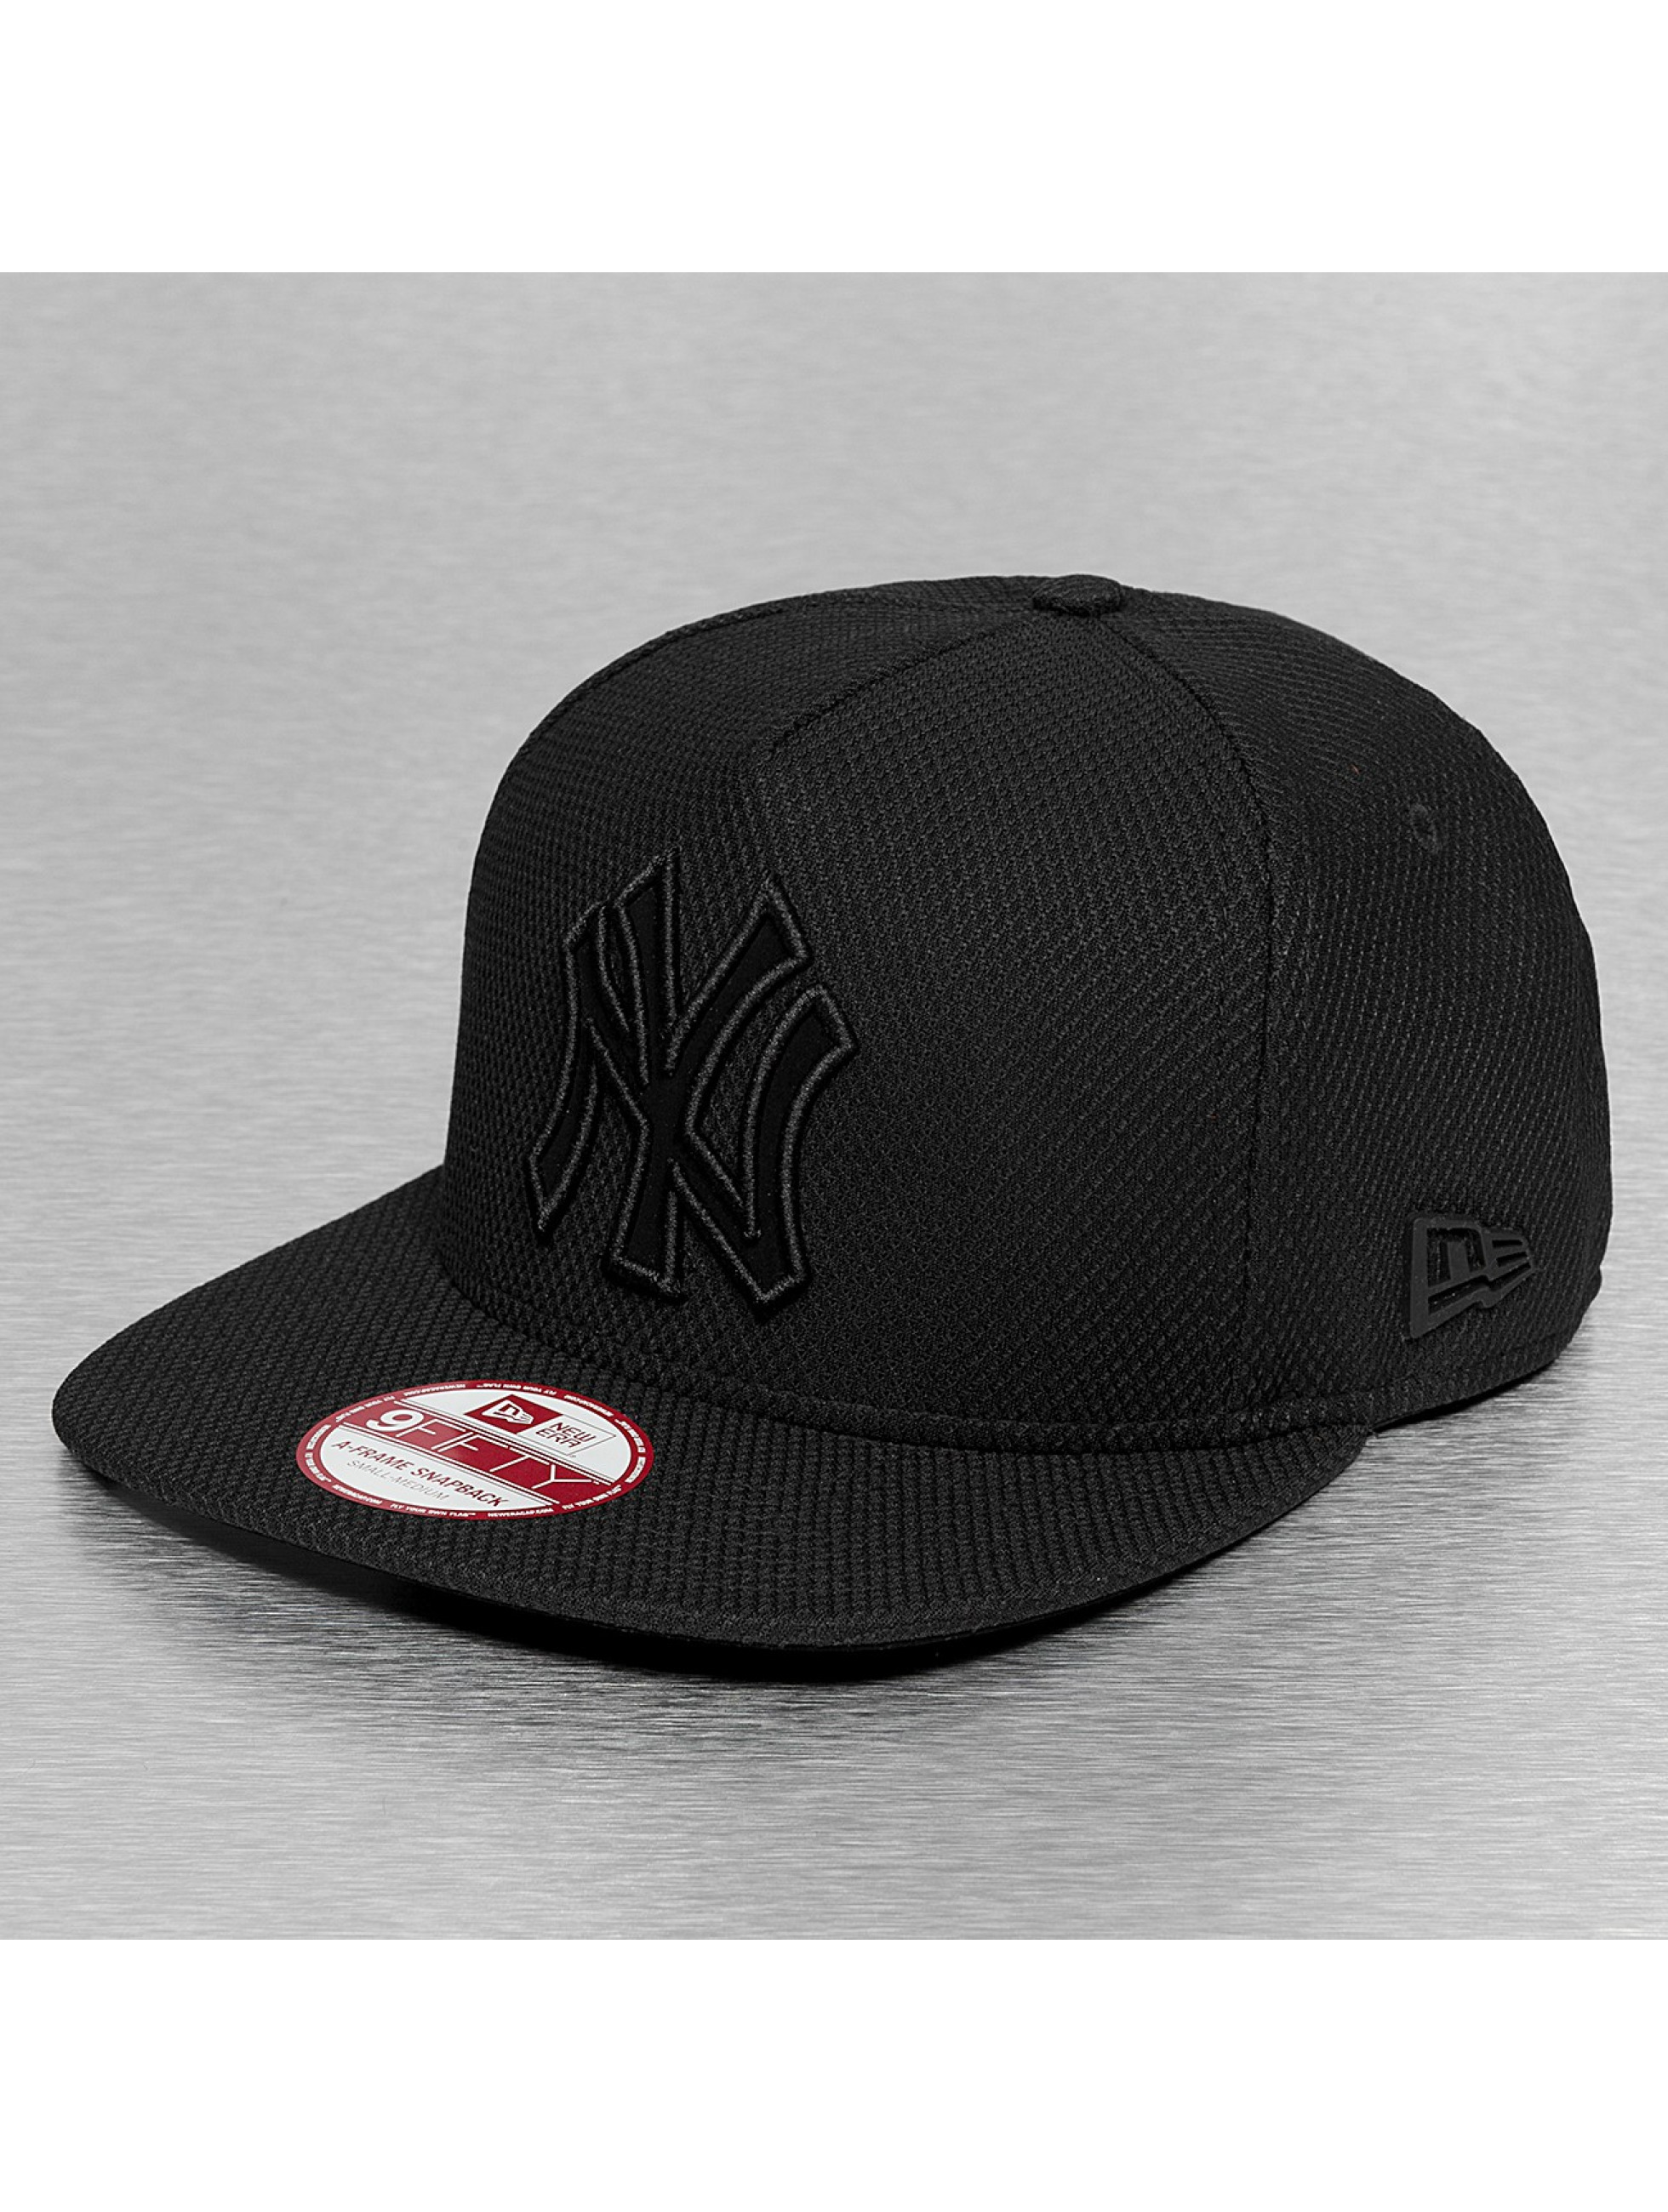 New Era Casquette Snapback & Strapback Diamond Fill NY Yankees noir